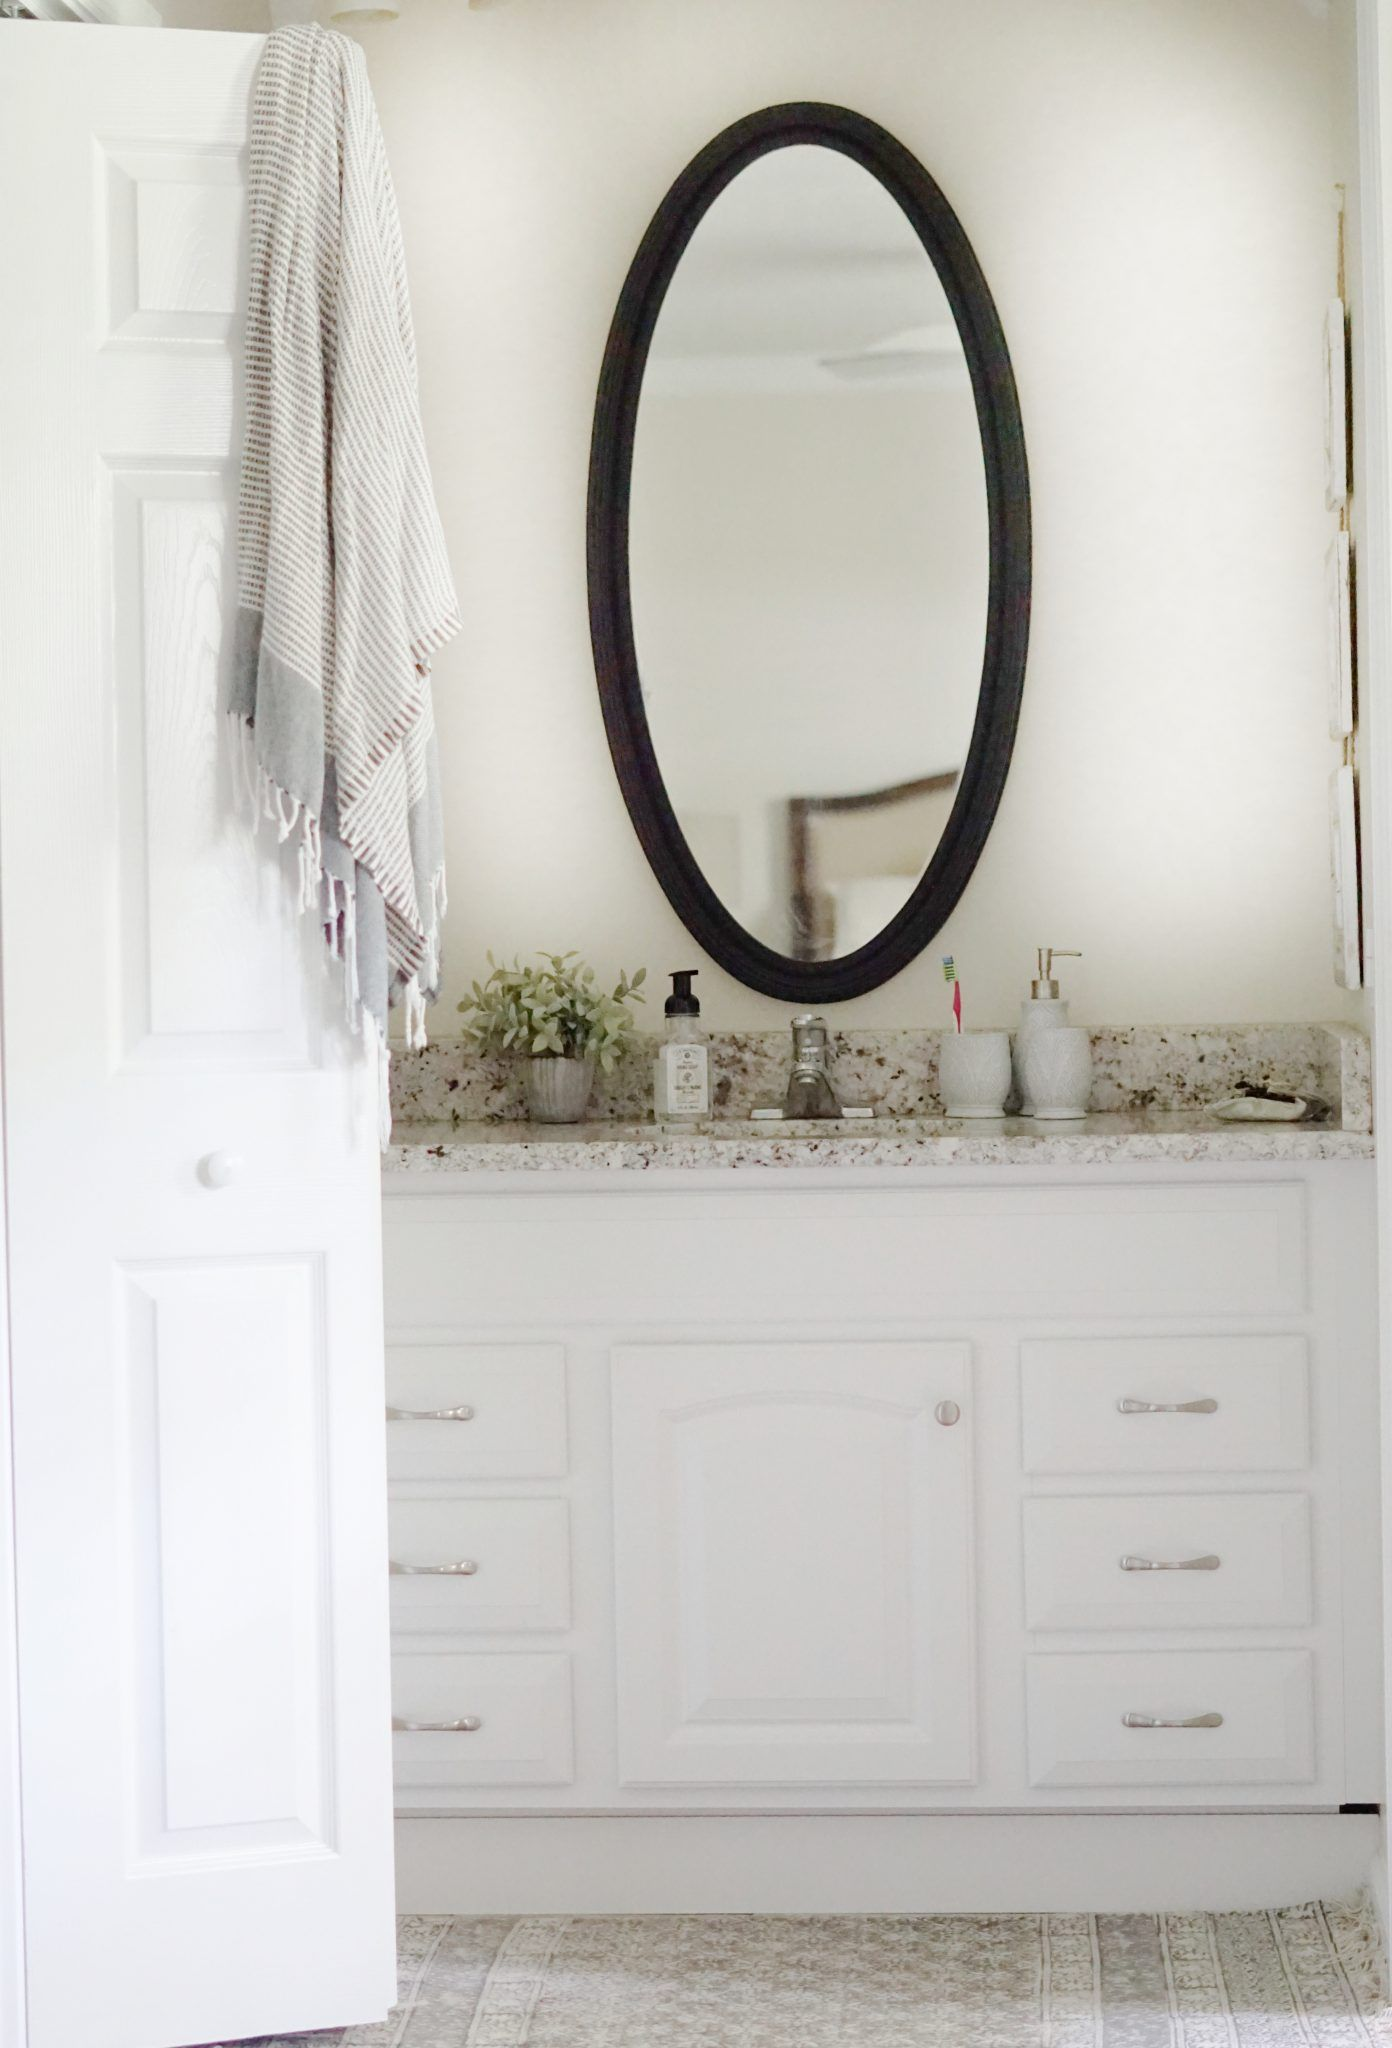 Black Trimmed Bathroom Mirrors | "|1392|2048|?|10fca76e9a7bc1631d9f40d39a26444c|False|UNLIKELY|0.3246014714241028